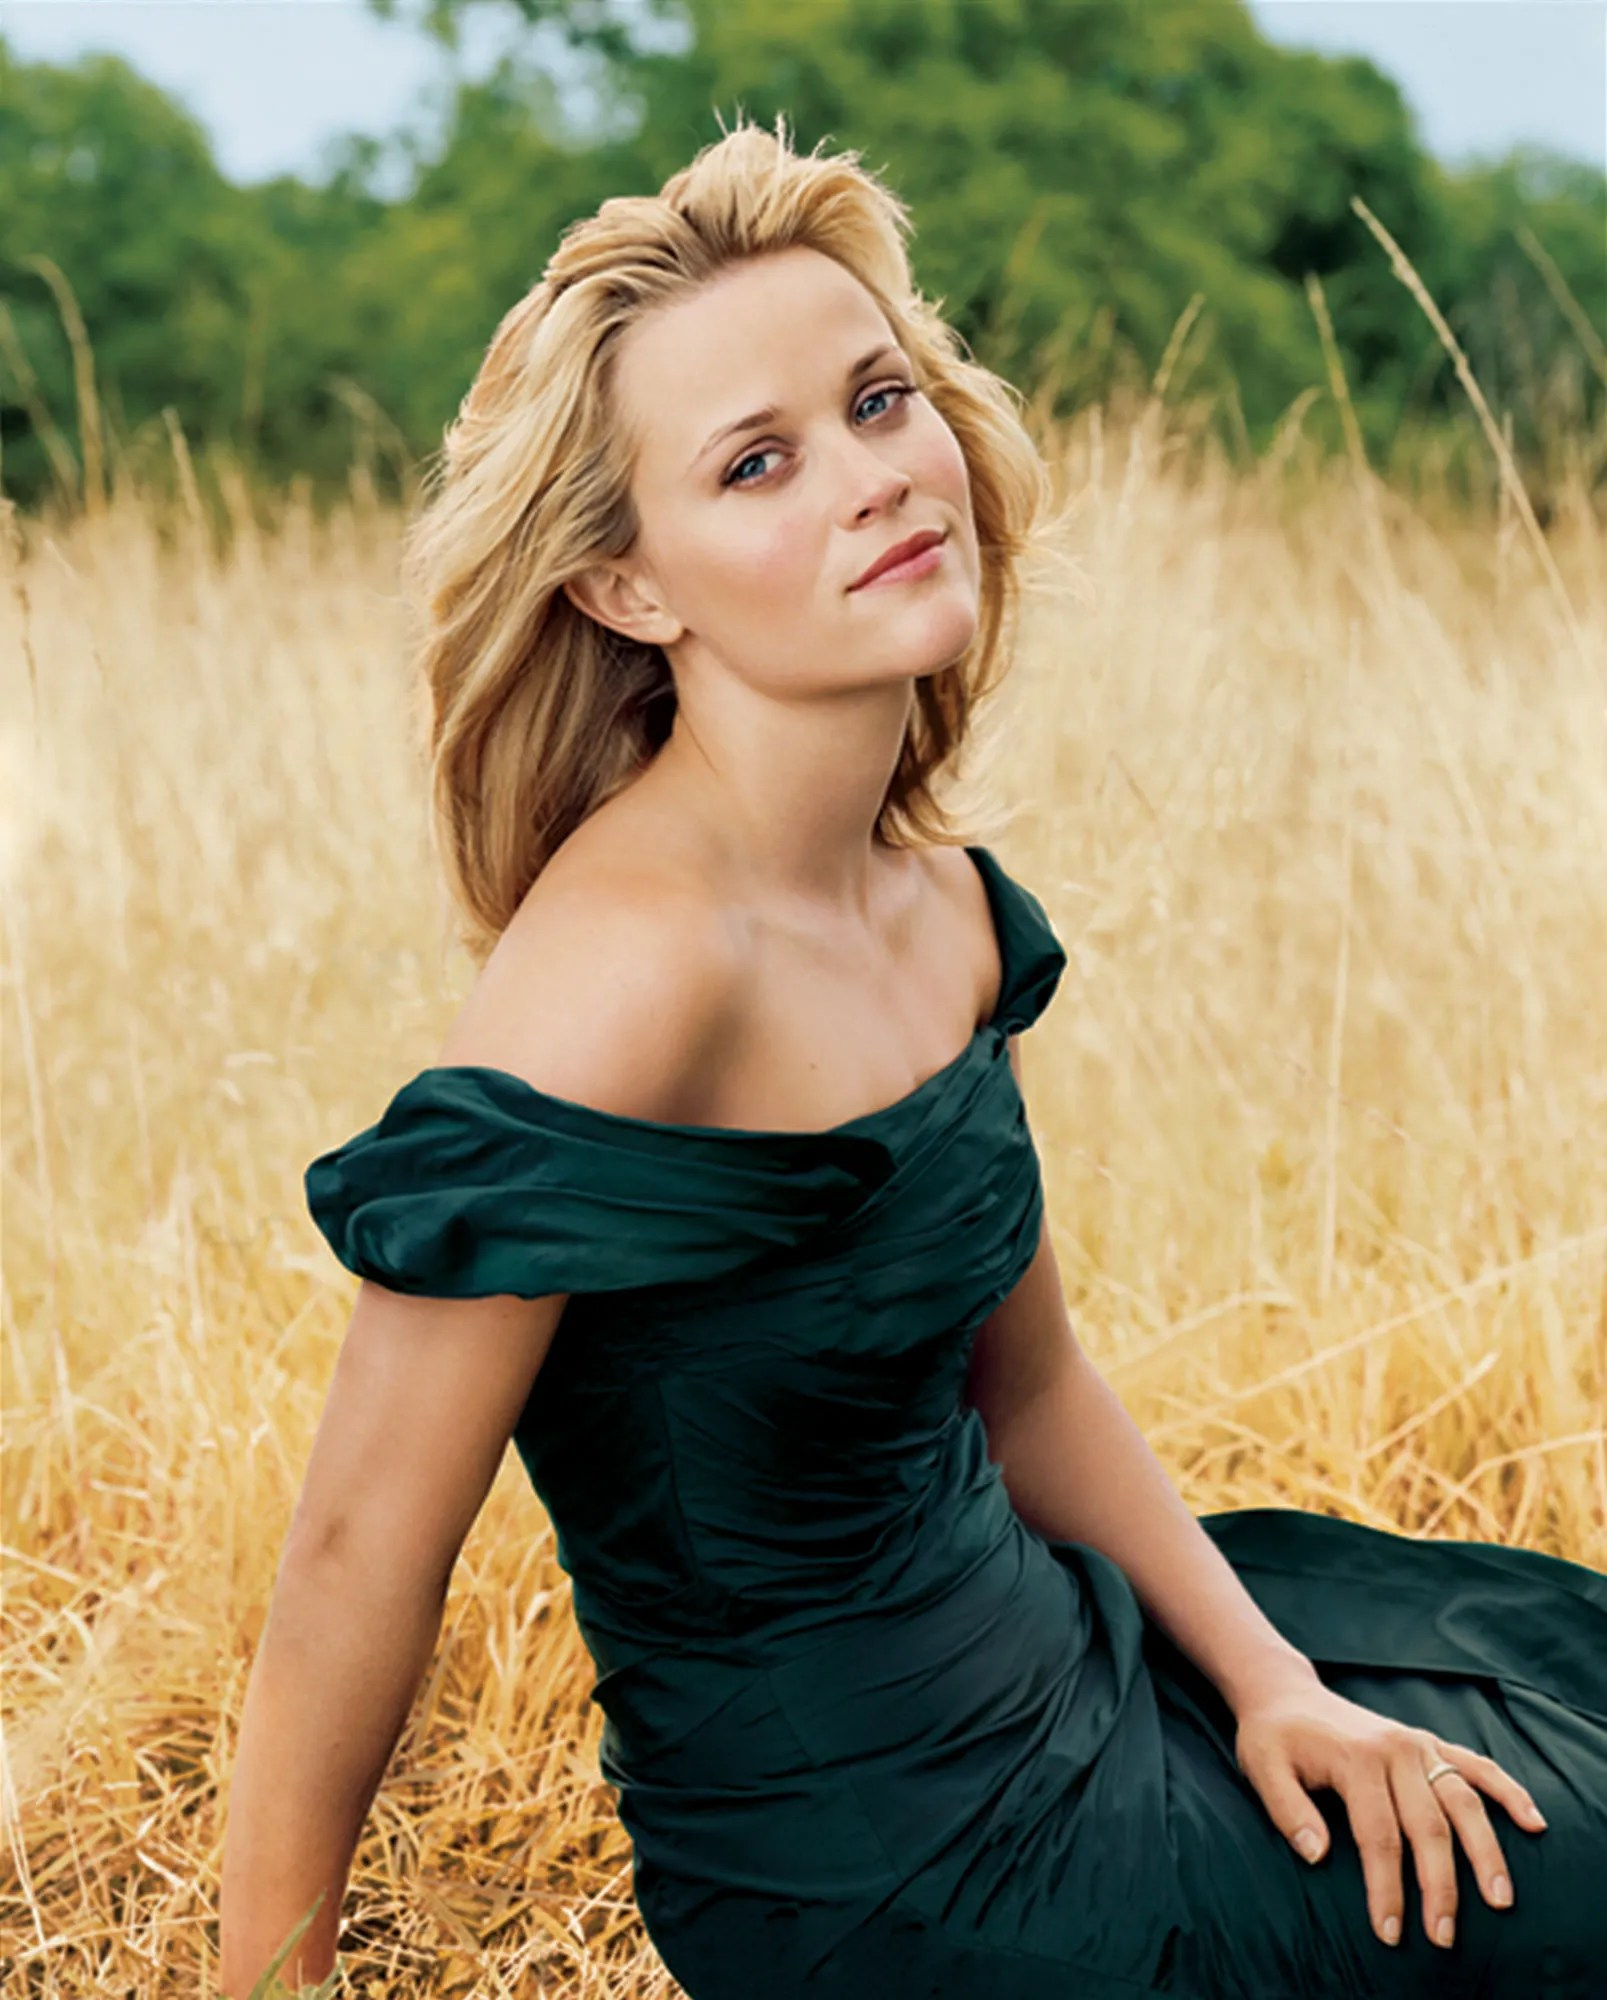 Reese Witherspoon Net Worth Income Source Career  House cars     Reese Witherspoon Source of Income